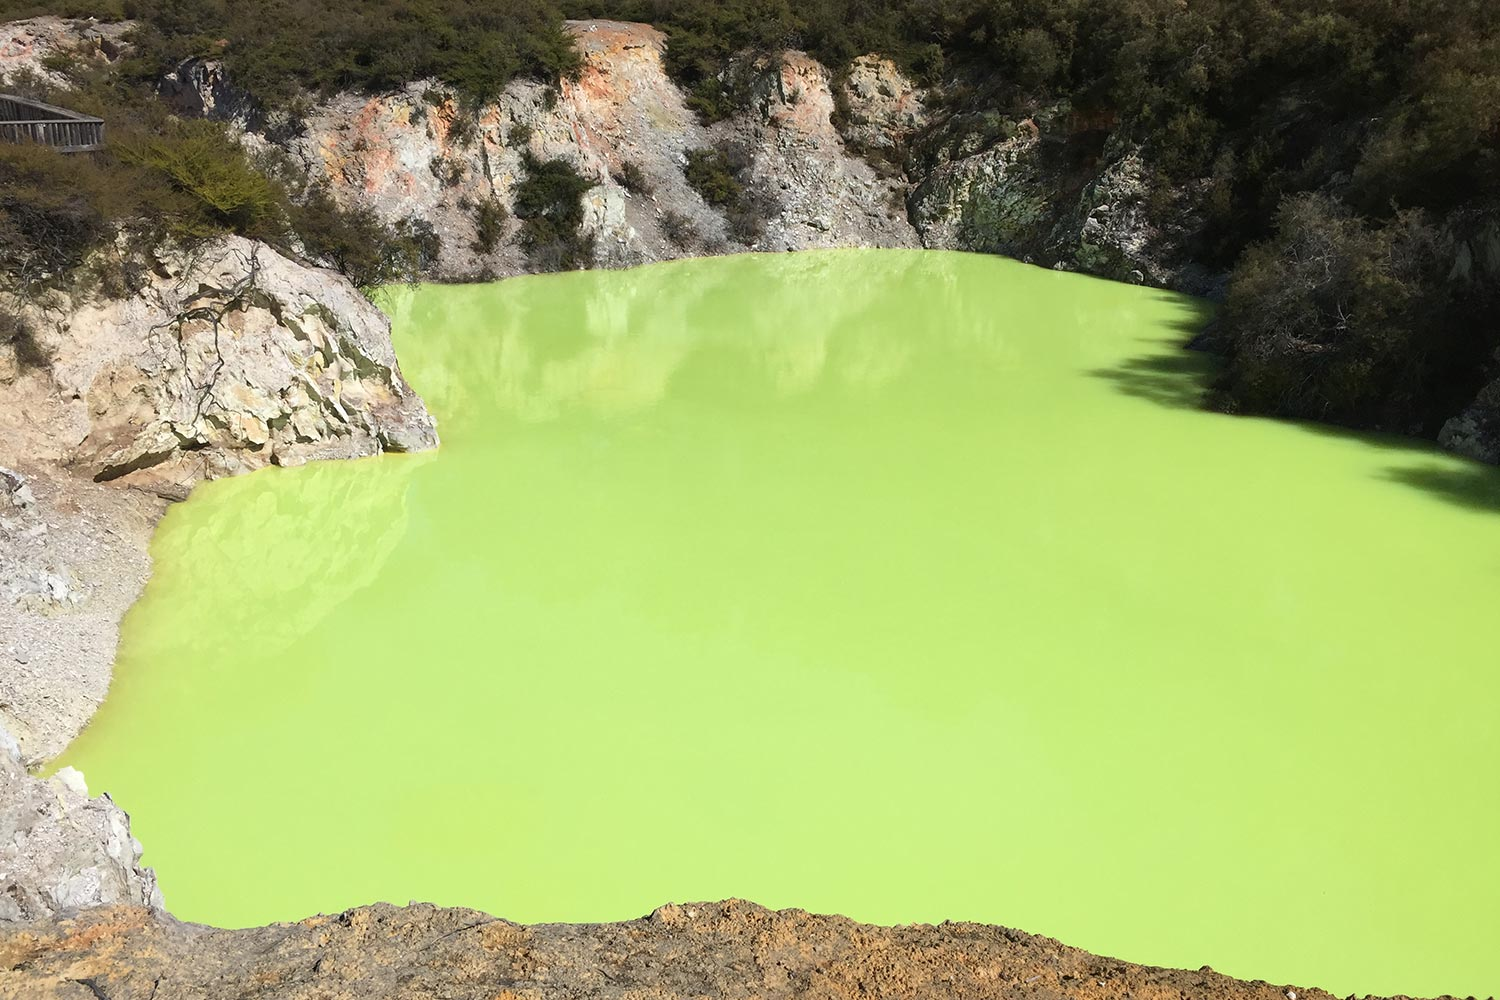 Roturua Wai-O-Tapu Devil's bath green lake